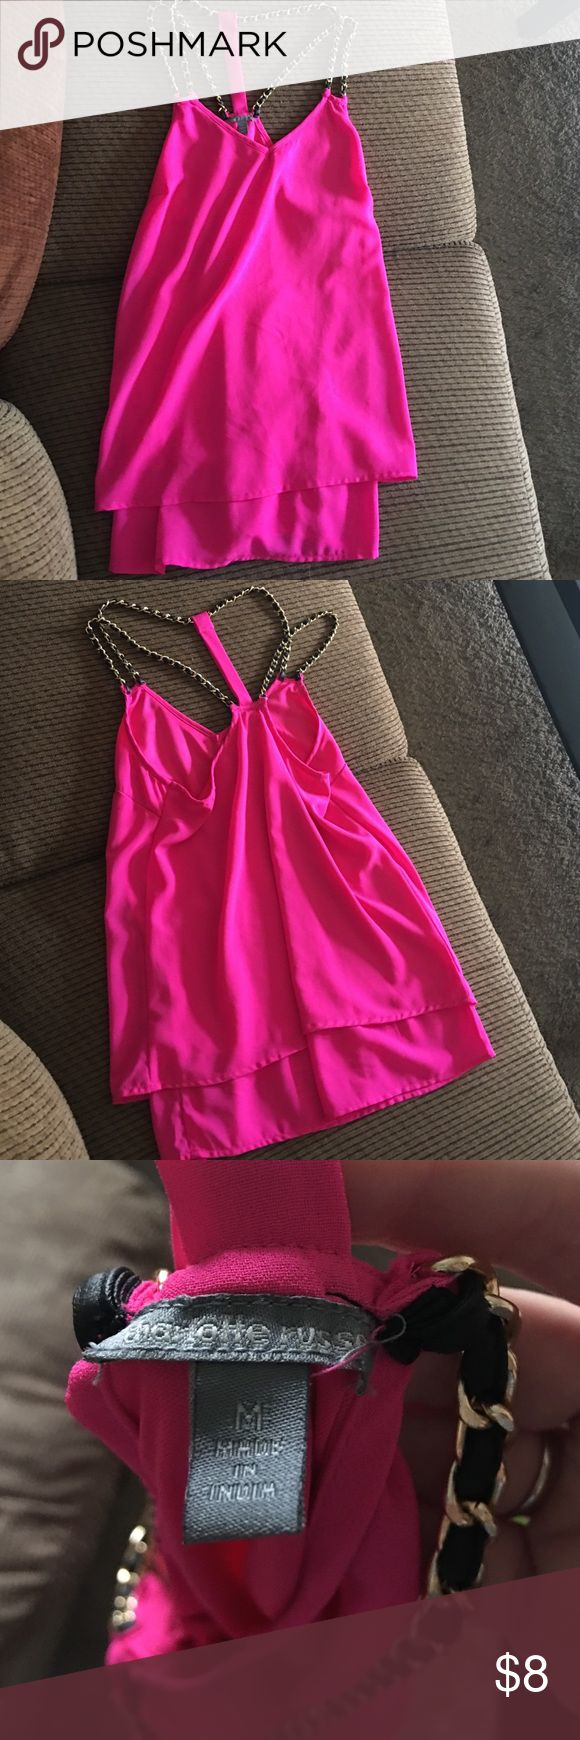 Hot pink shirt Hot pink shirt. Never worn. No tags, just been hanging in my closest. Brand: Charlotte Rouse Tops